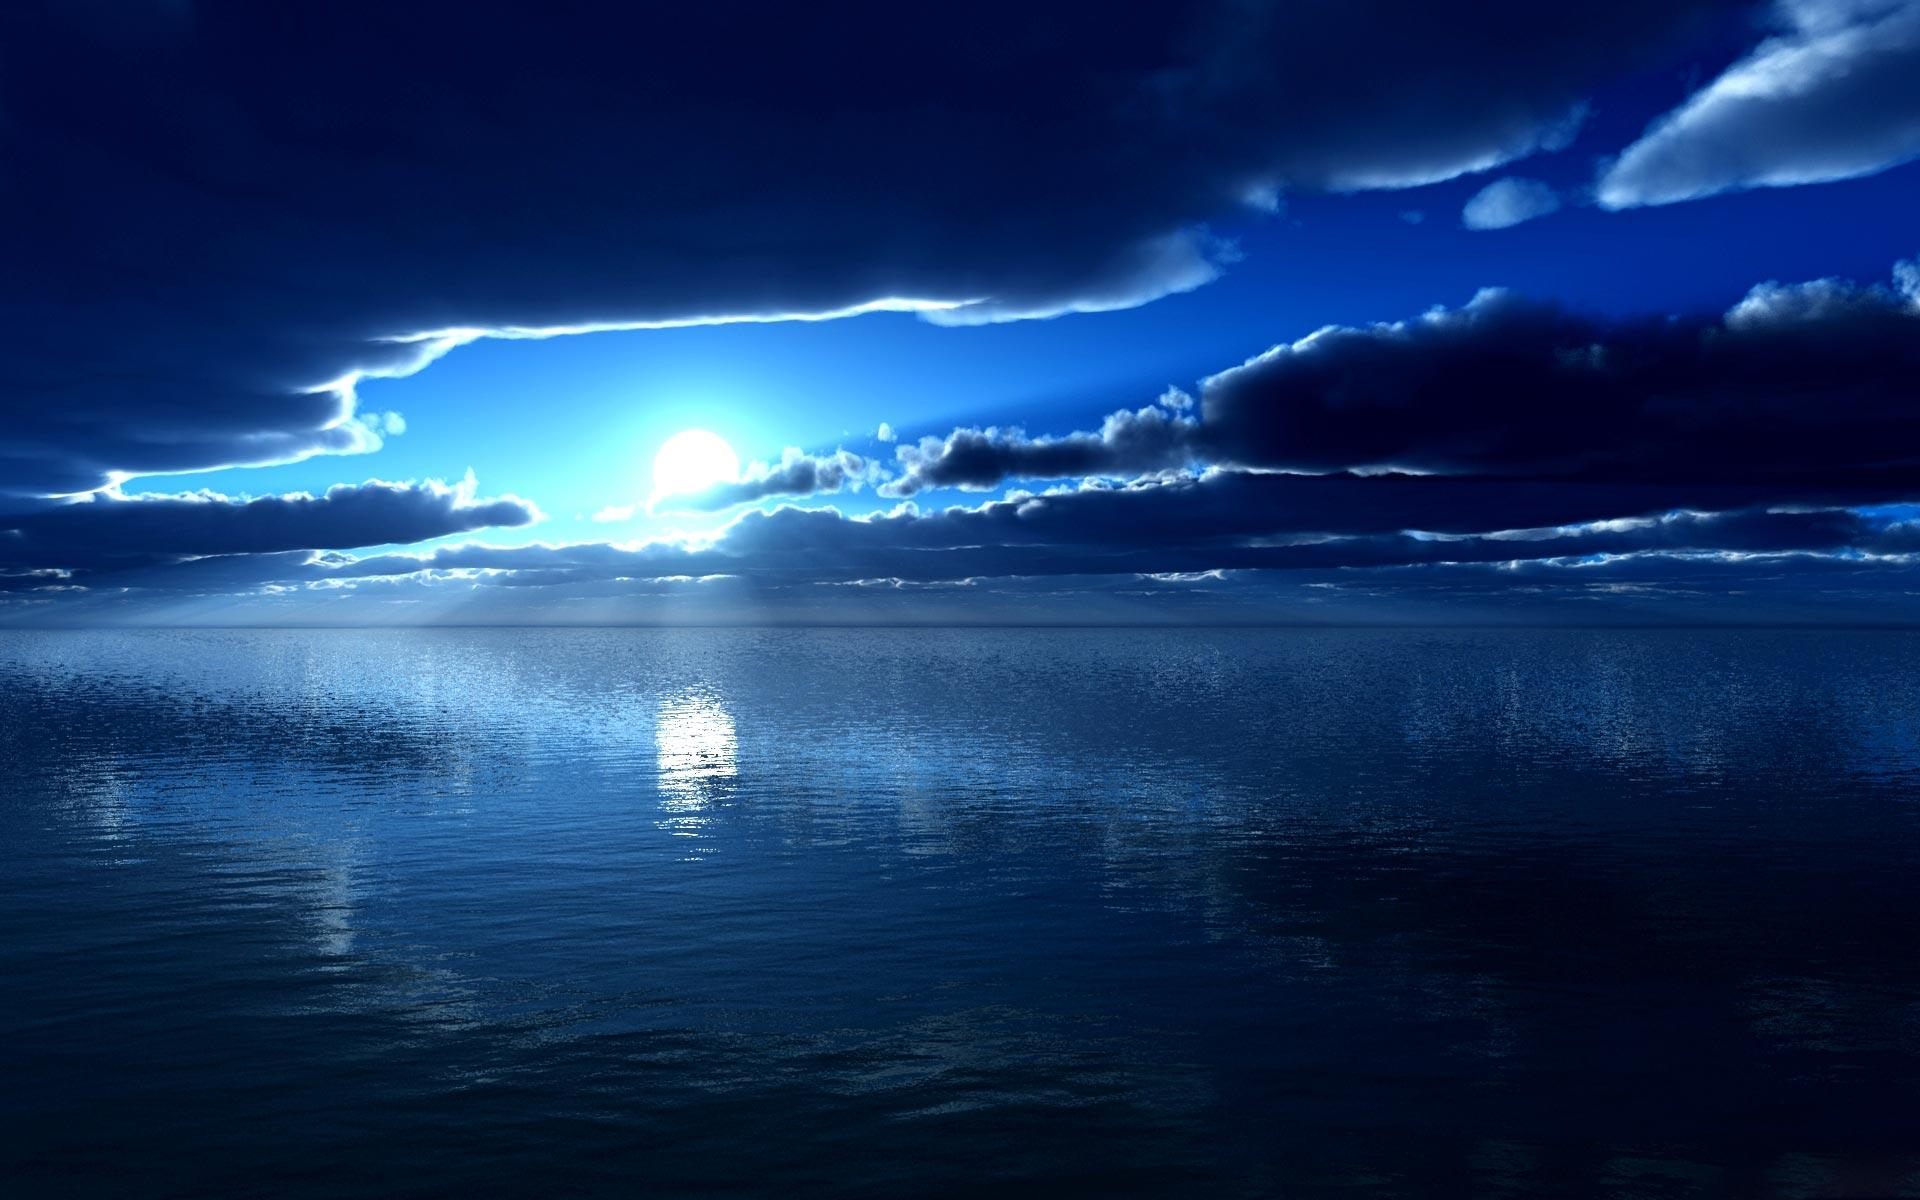 Sky and River relax desktop backgrounds hd Wallpaper | High ...